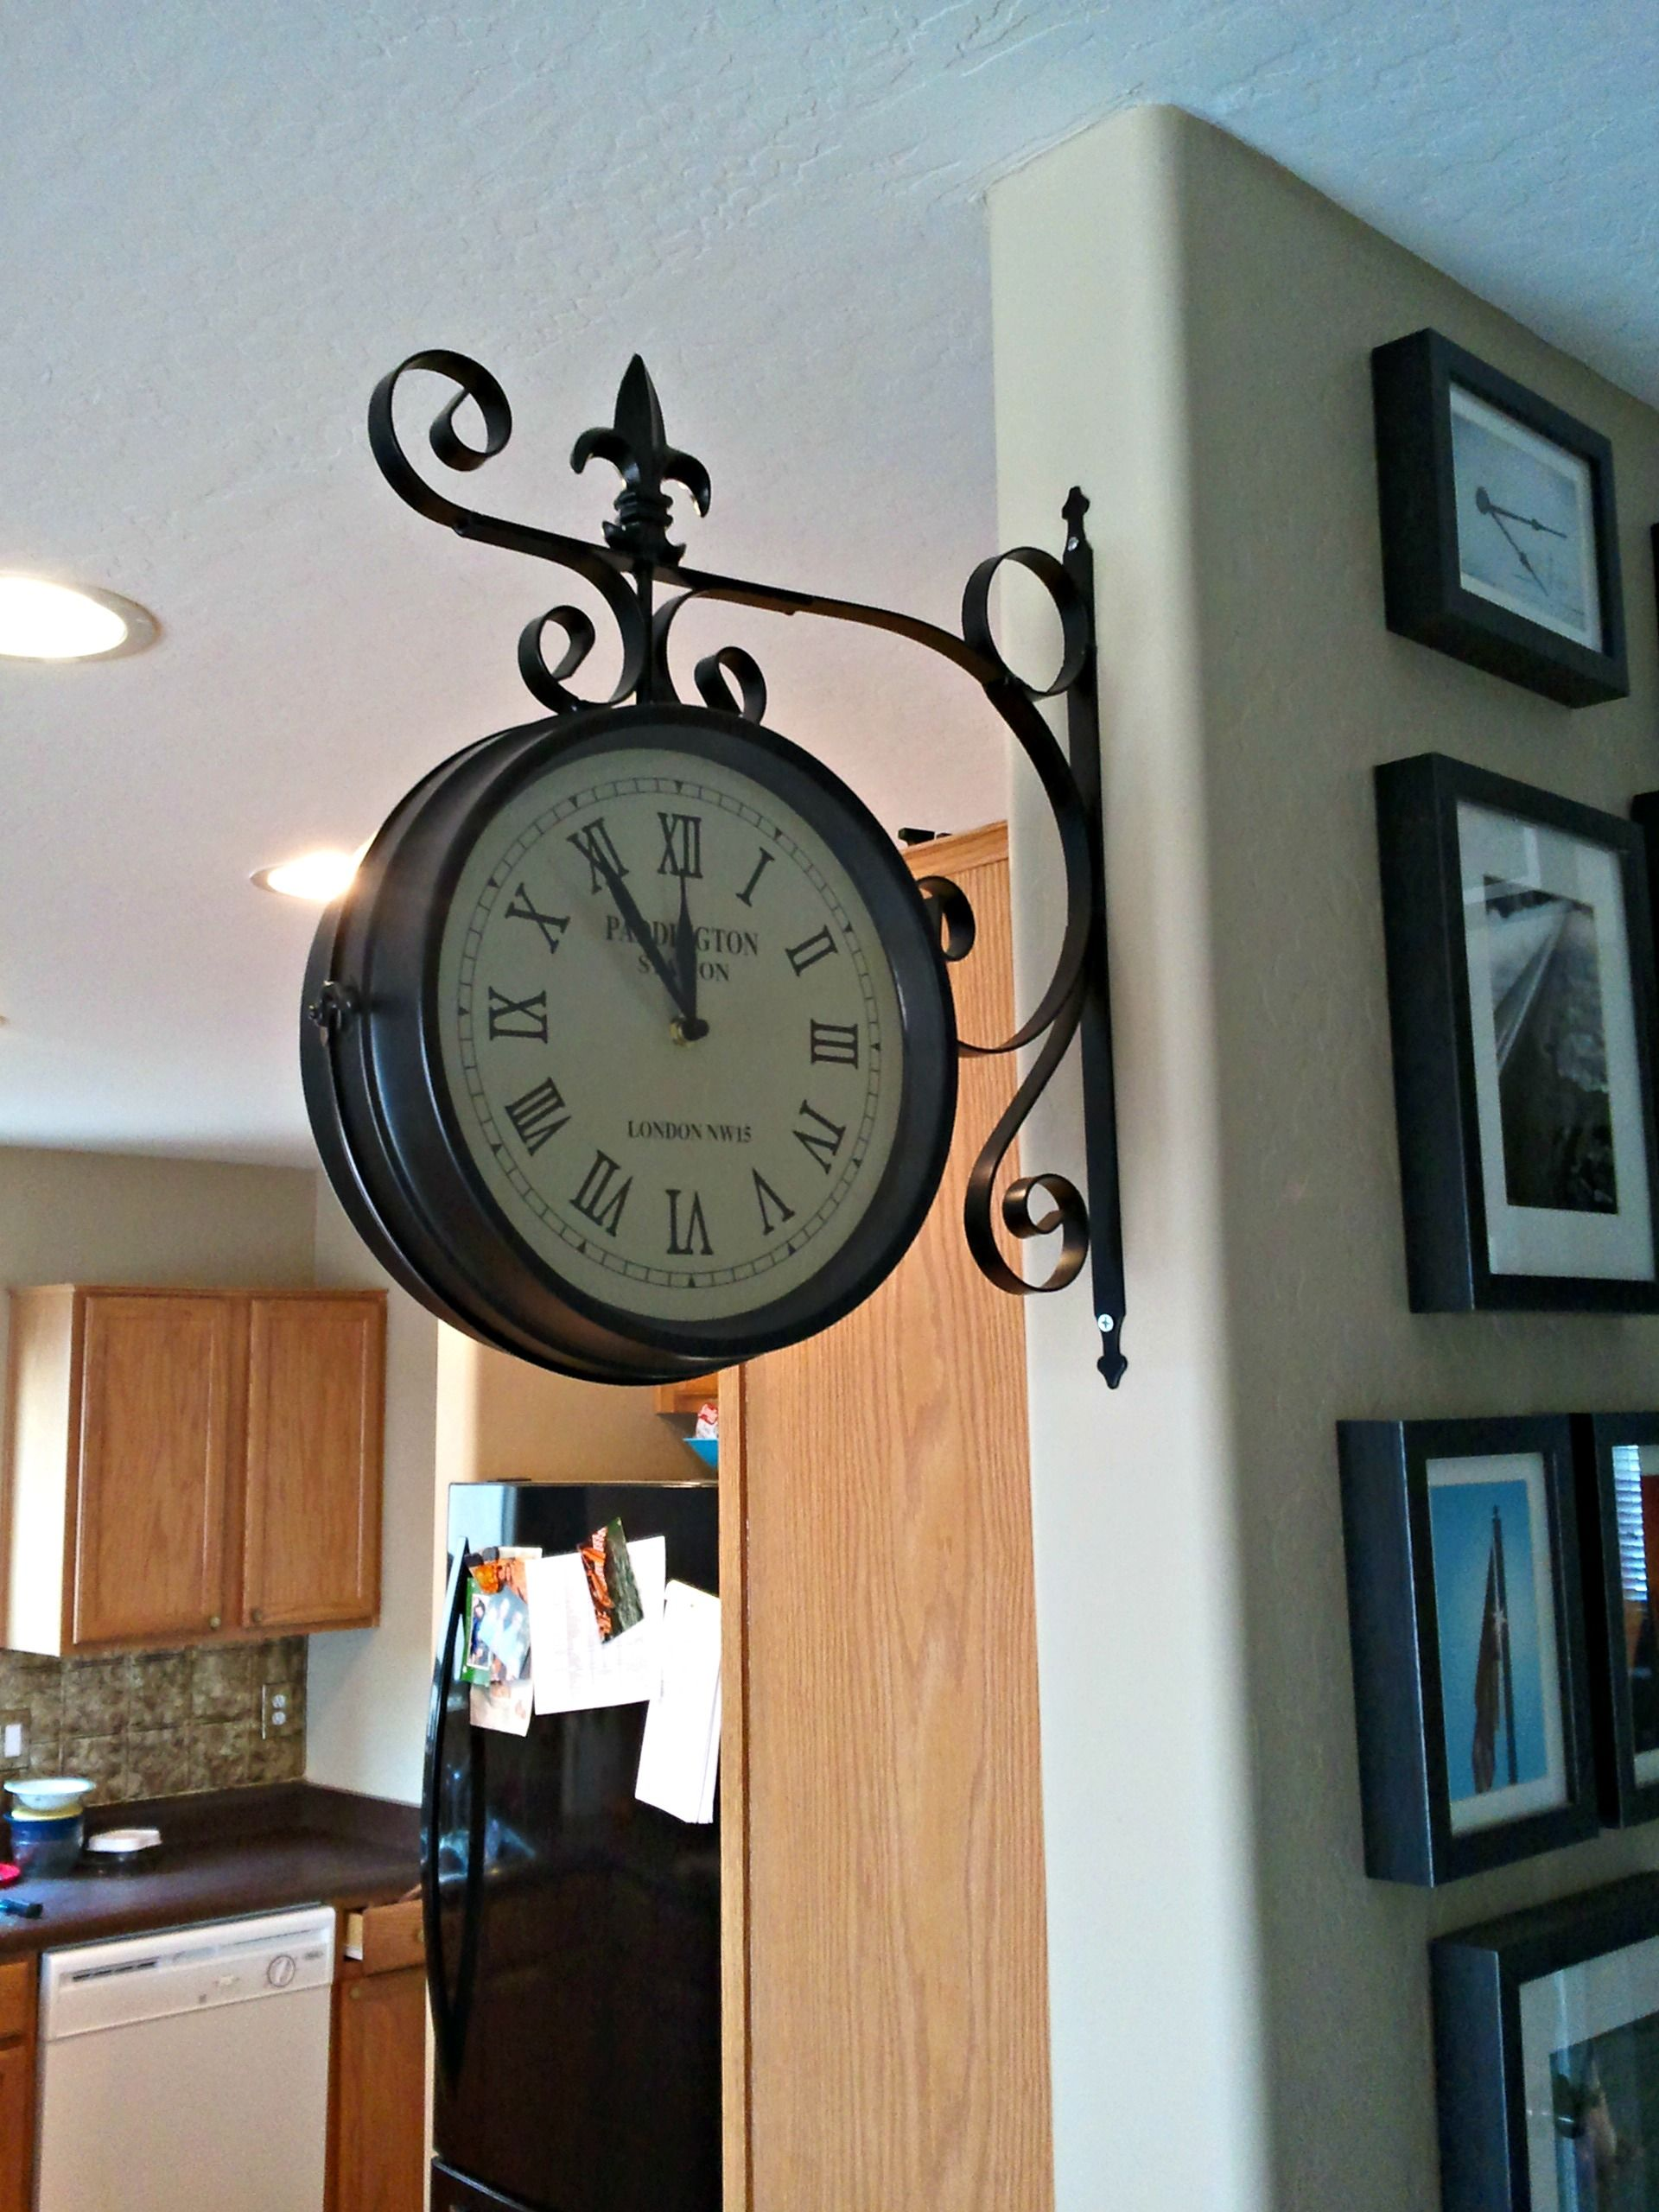 Kitchen Railway Station Clock Rooms Of The House Kitchen Pinterest Clocks Kitchens And House